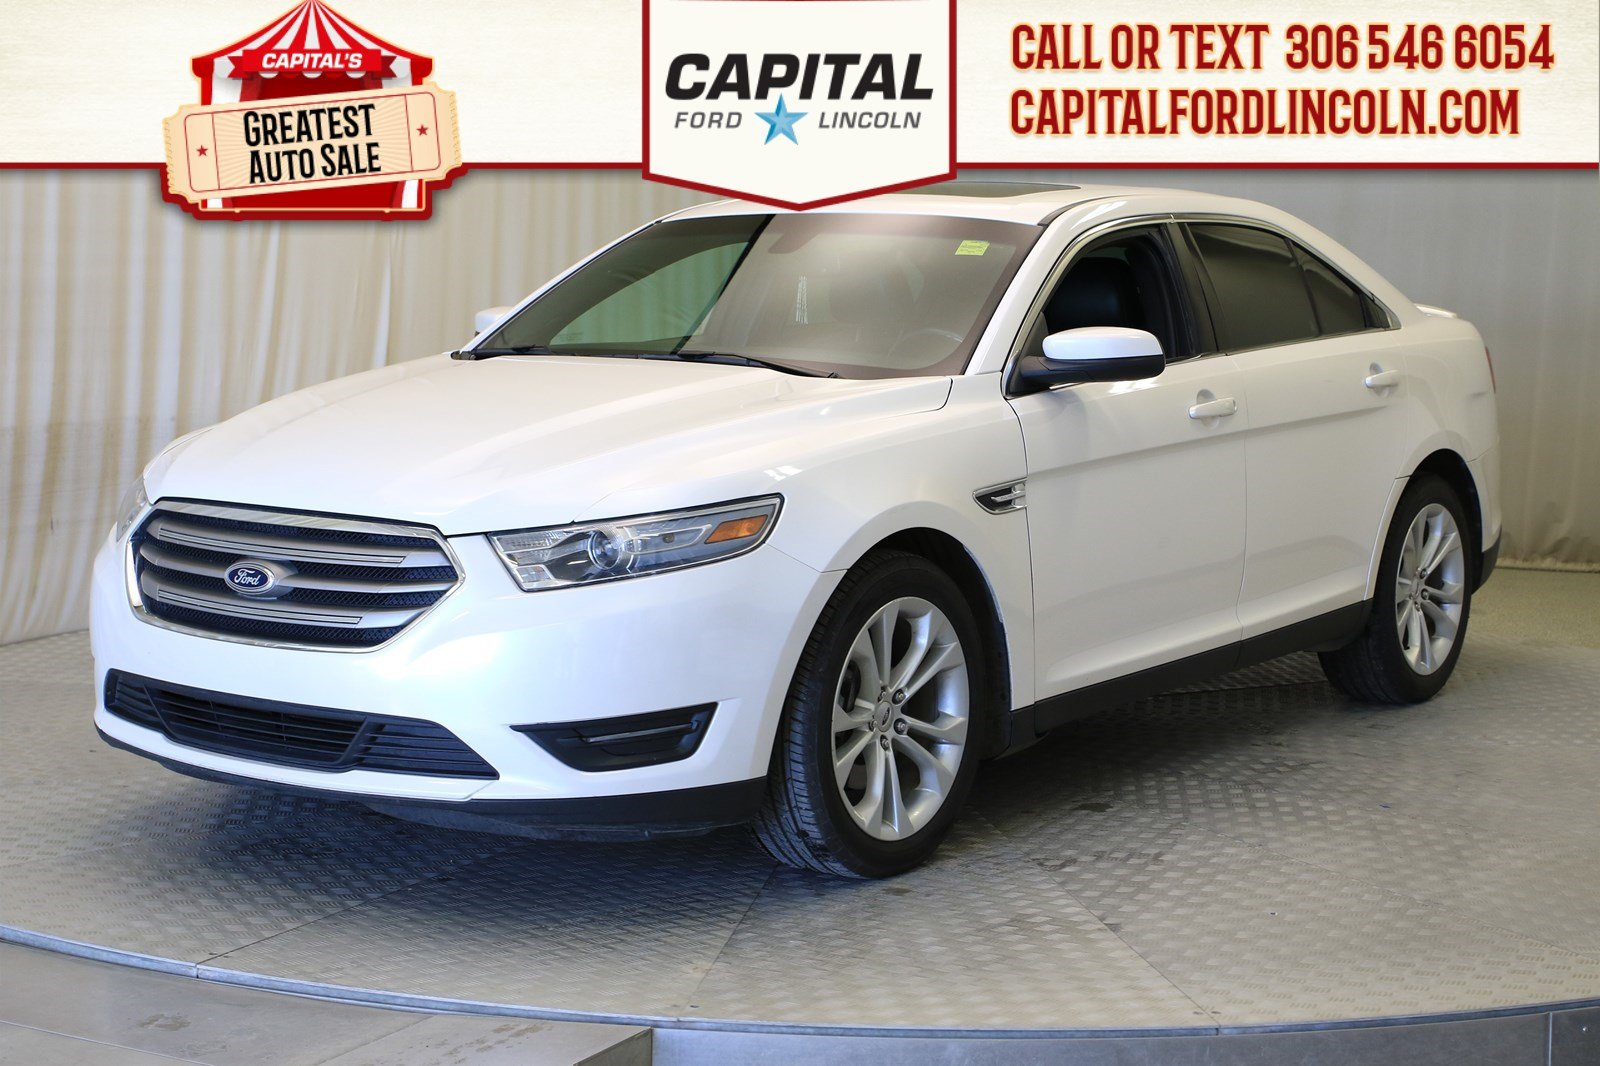 Pre-Owned 2013 Ford Taurus SEL AWD